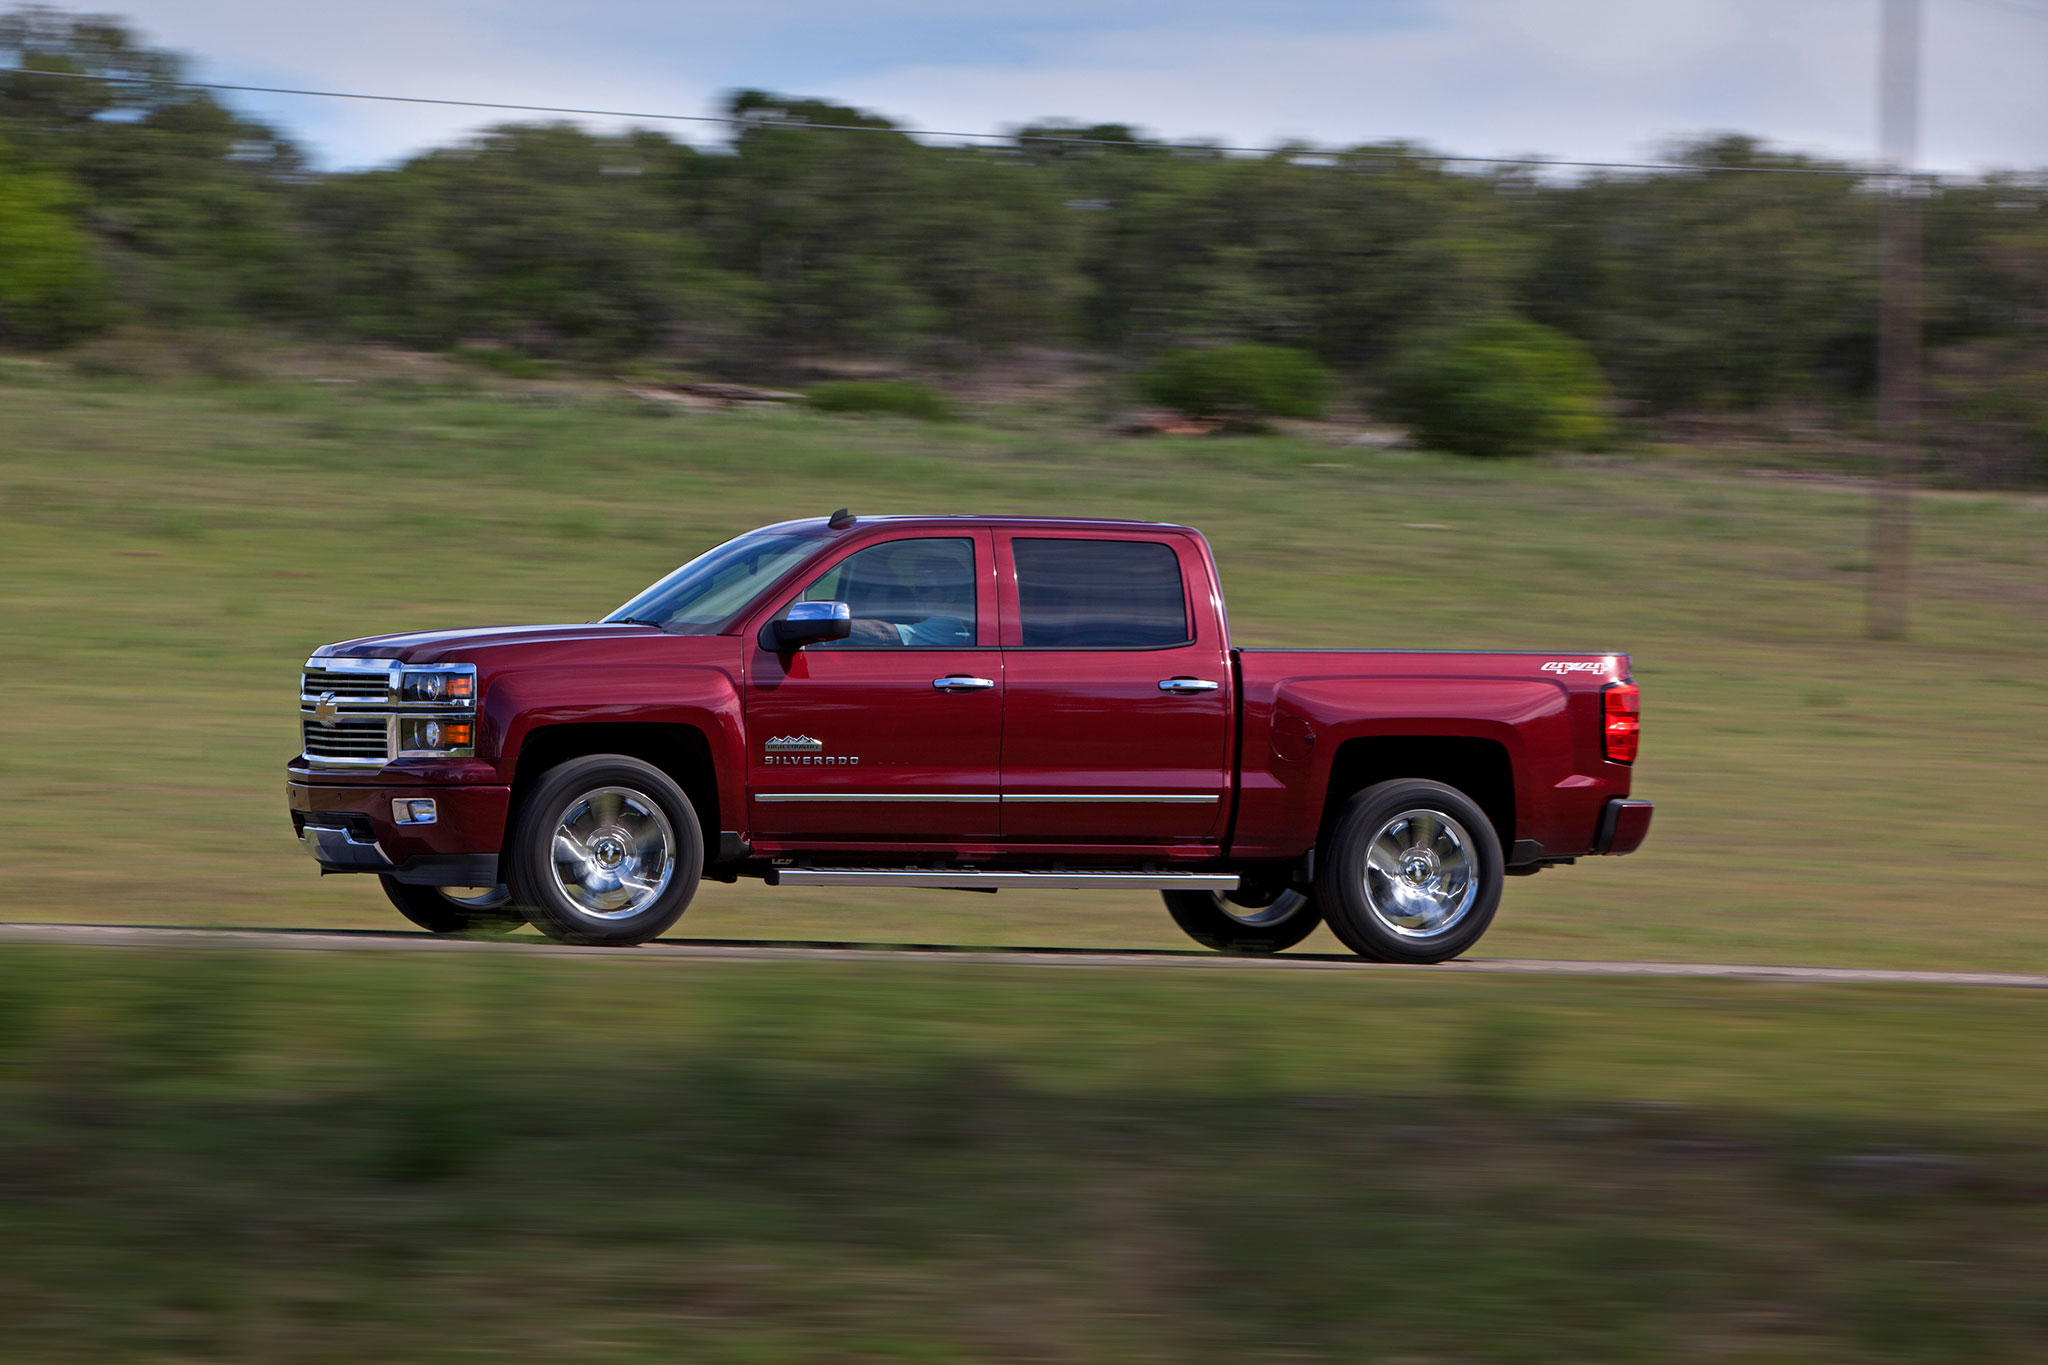 2014 chevrolet silverado high country first drive automobile magazine. Black Bedroom Furniture Sets. Home Design Ideas